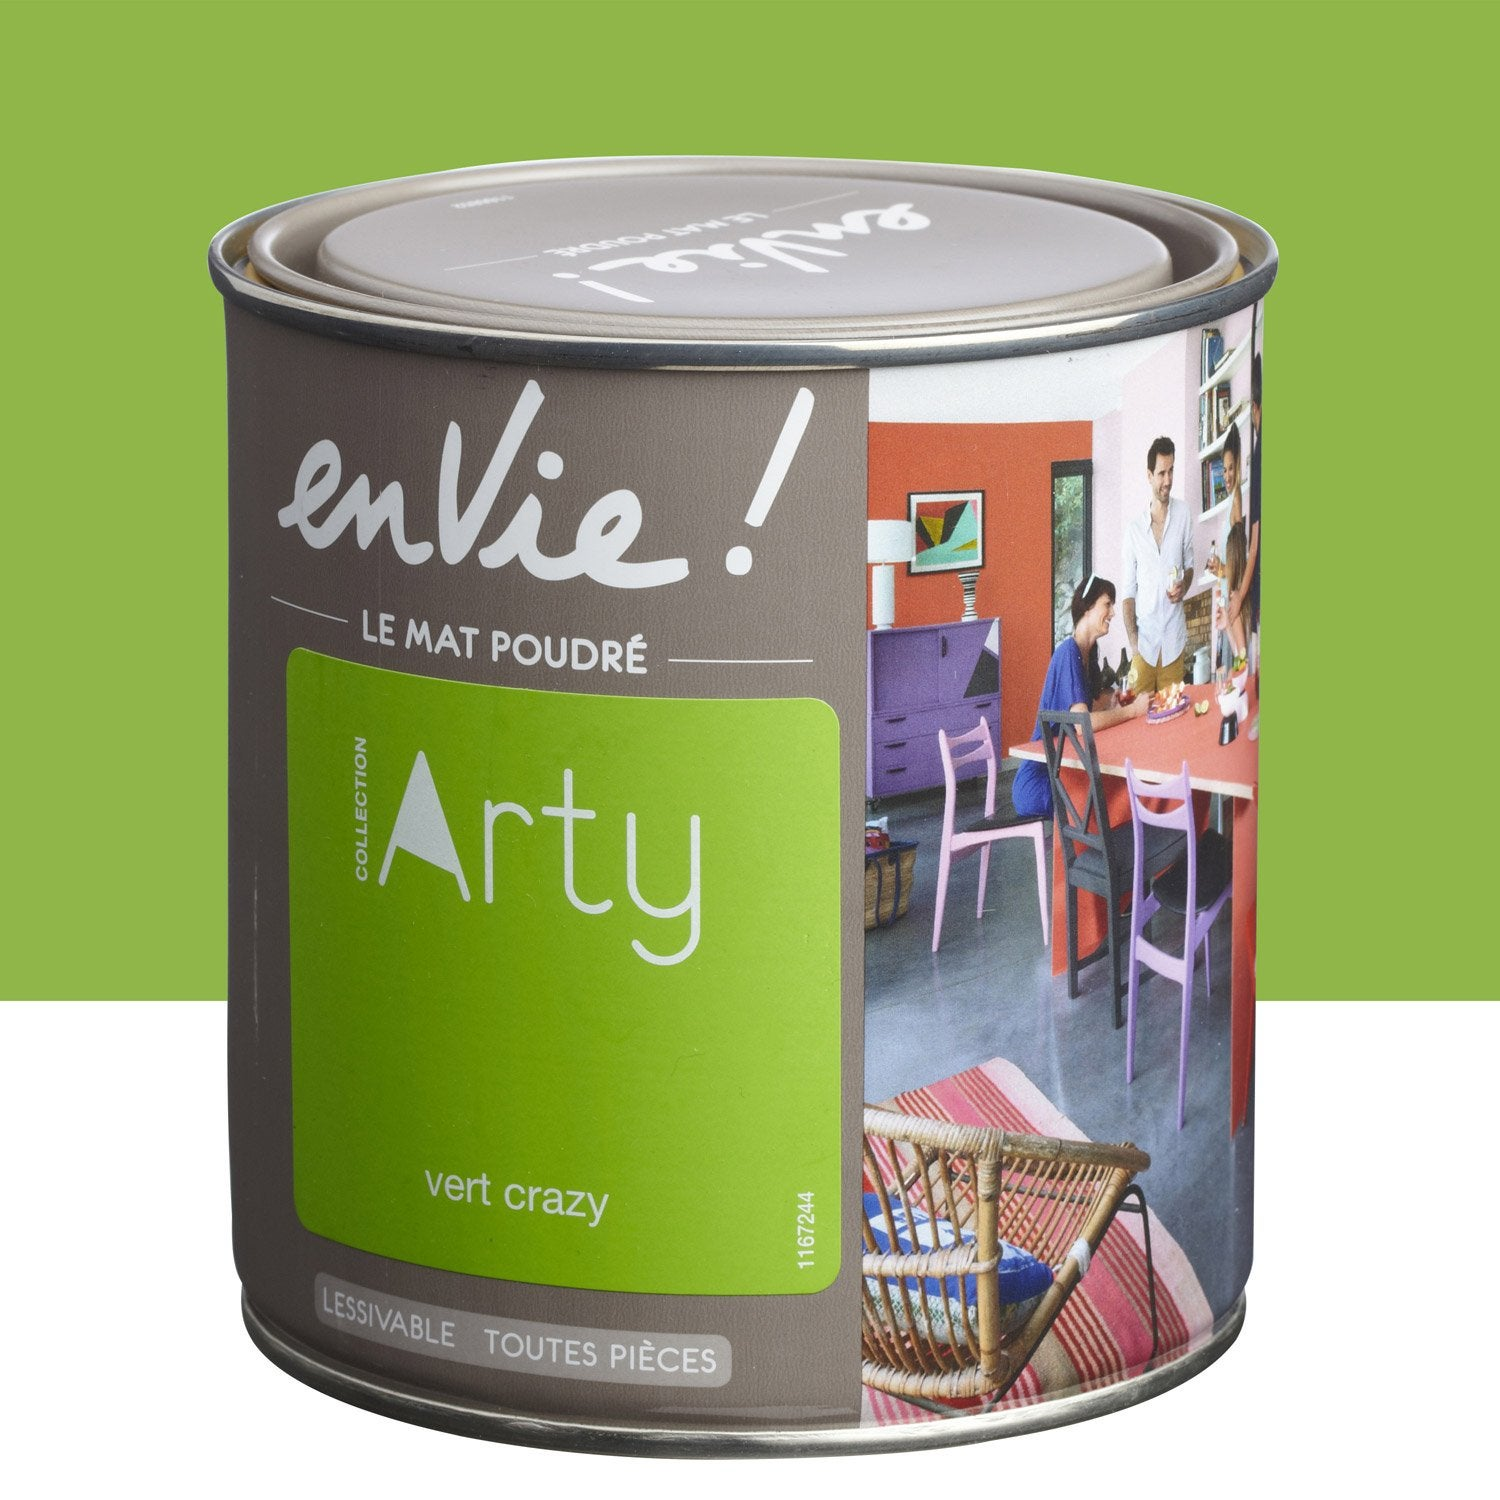 Peinture vert crazy luxens envie collection arty 0 5 l leroy merlin for Peinture orange brule